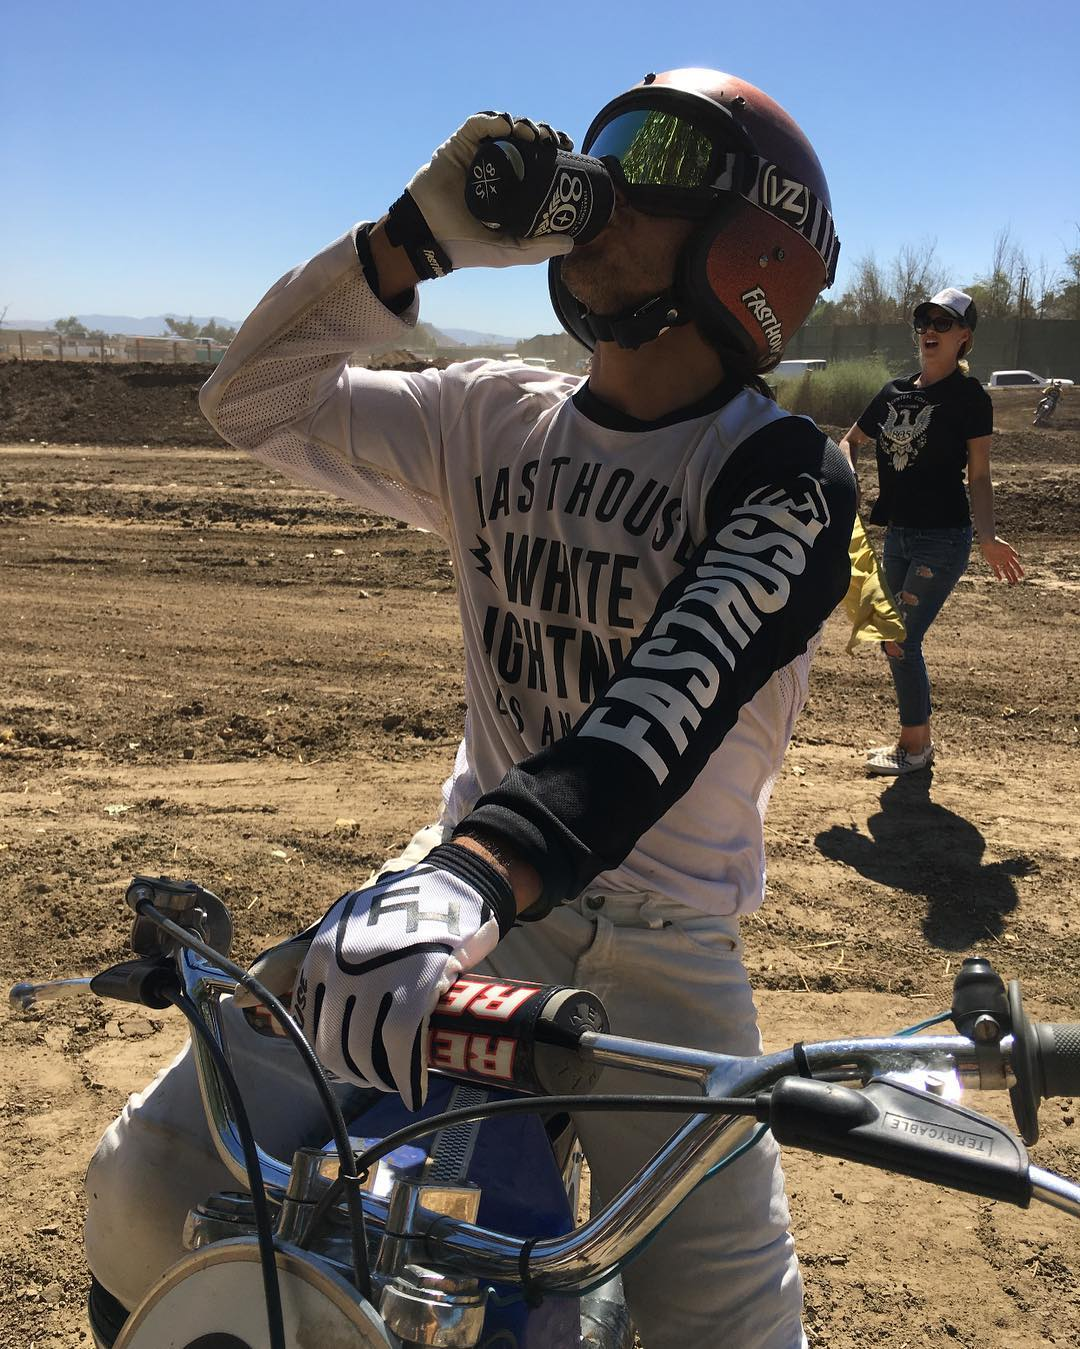 @rd51 out here with a little refreshment between laps. Don't try this at home. @vonzipperfreewheelers #FreewheelersRC #VonZipper #SupportWildLife